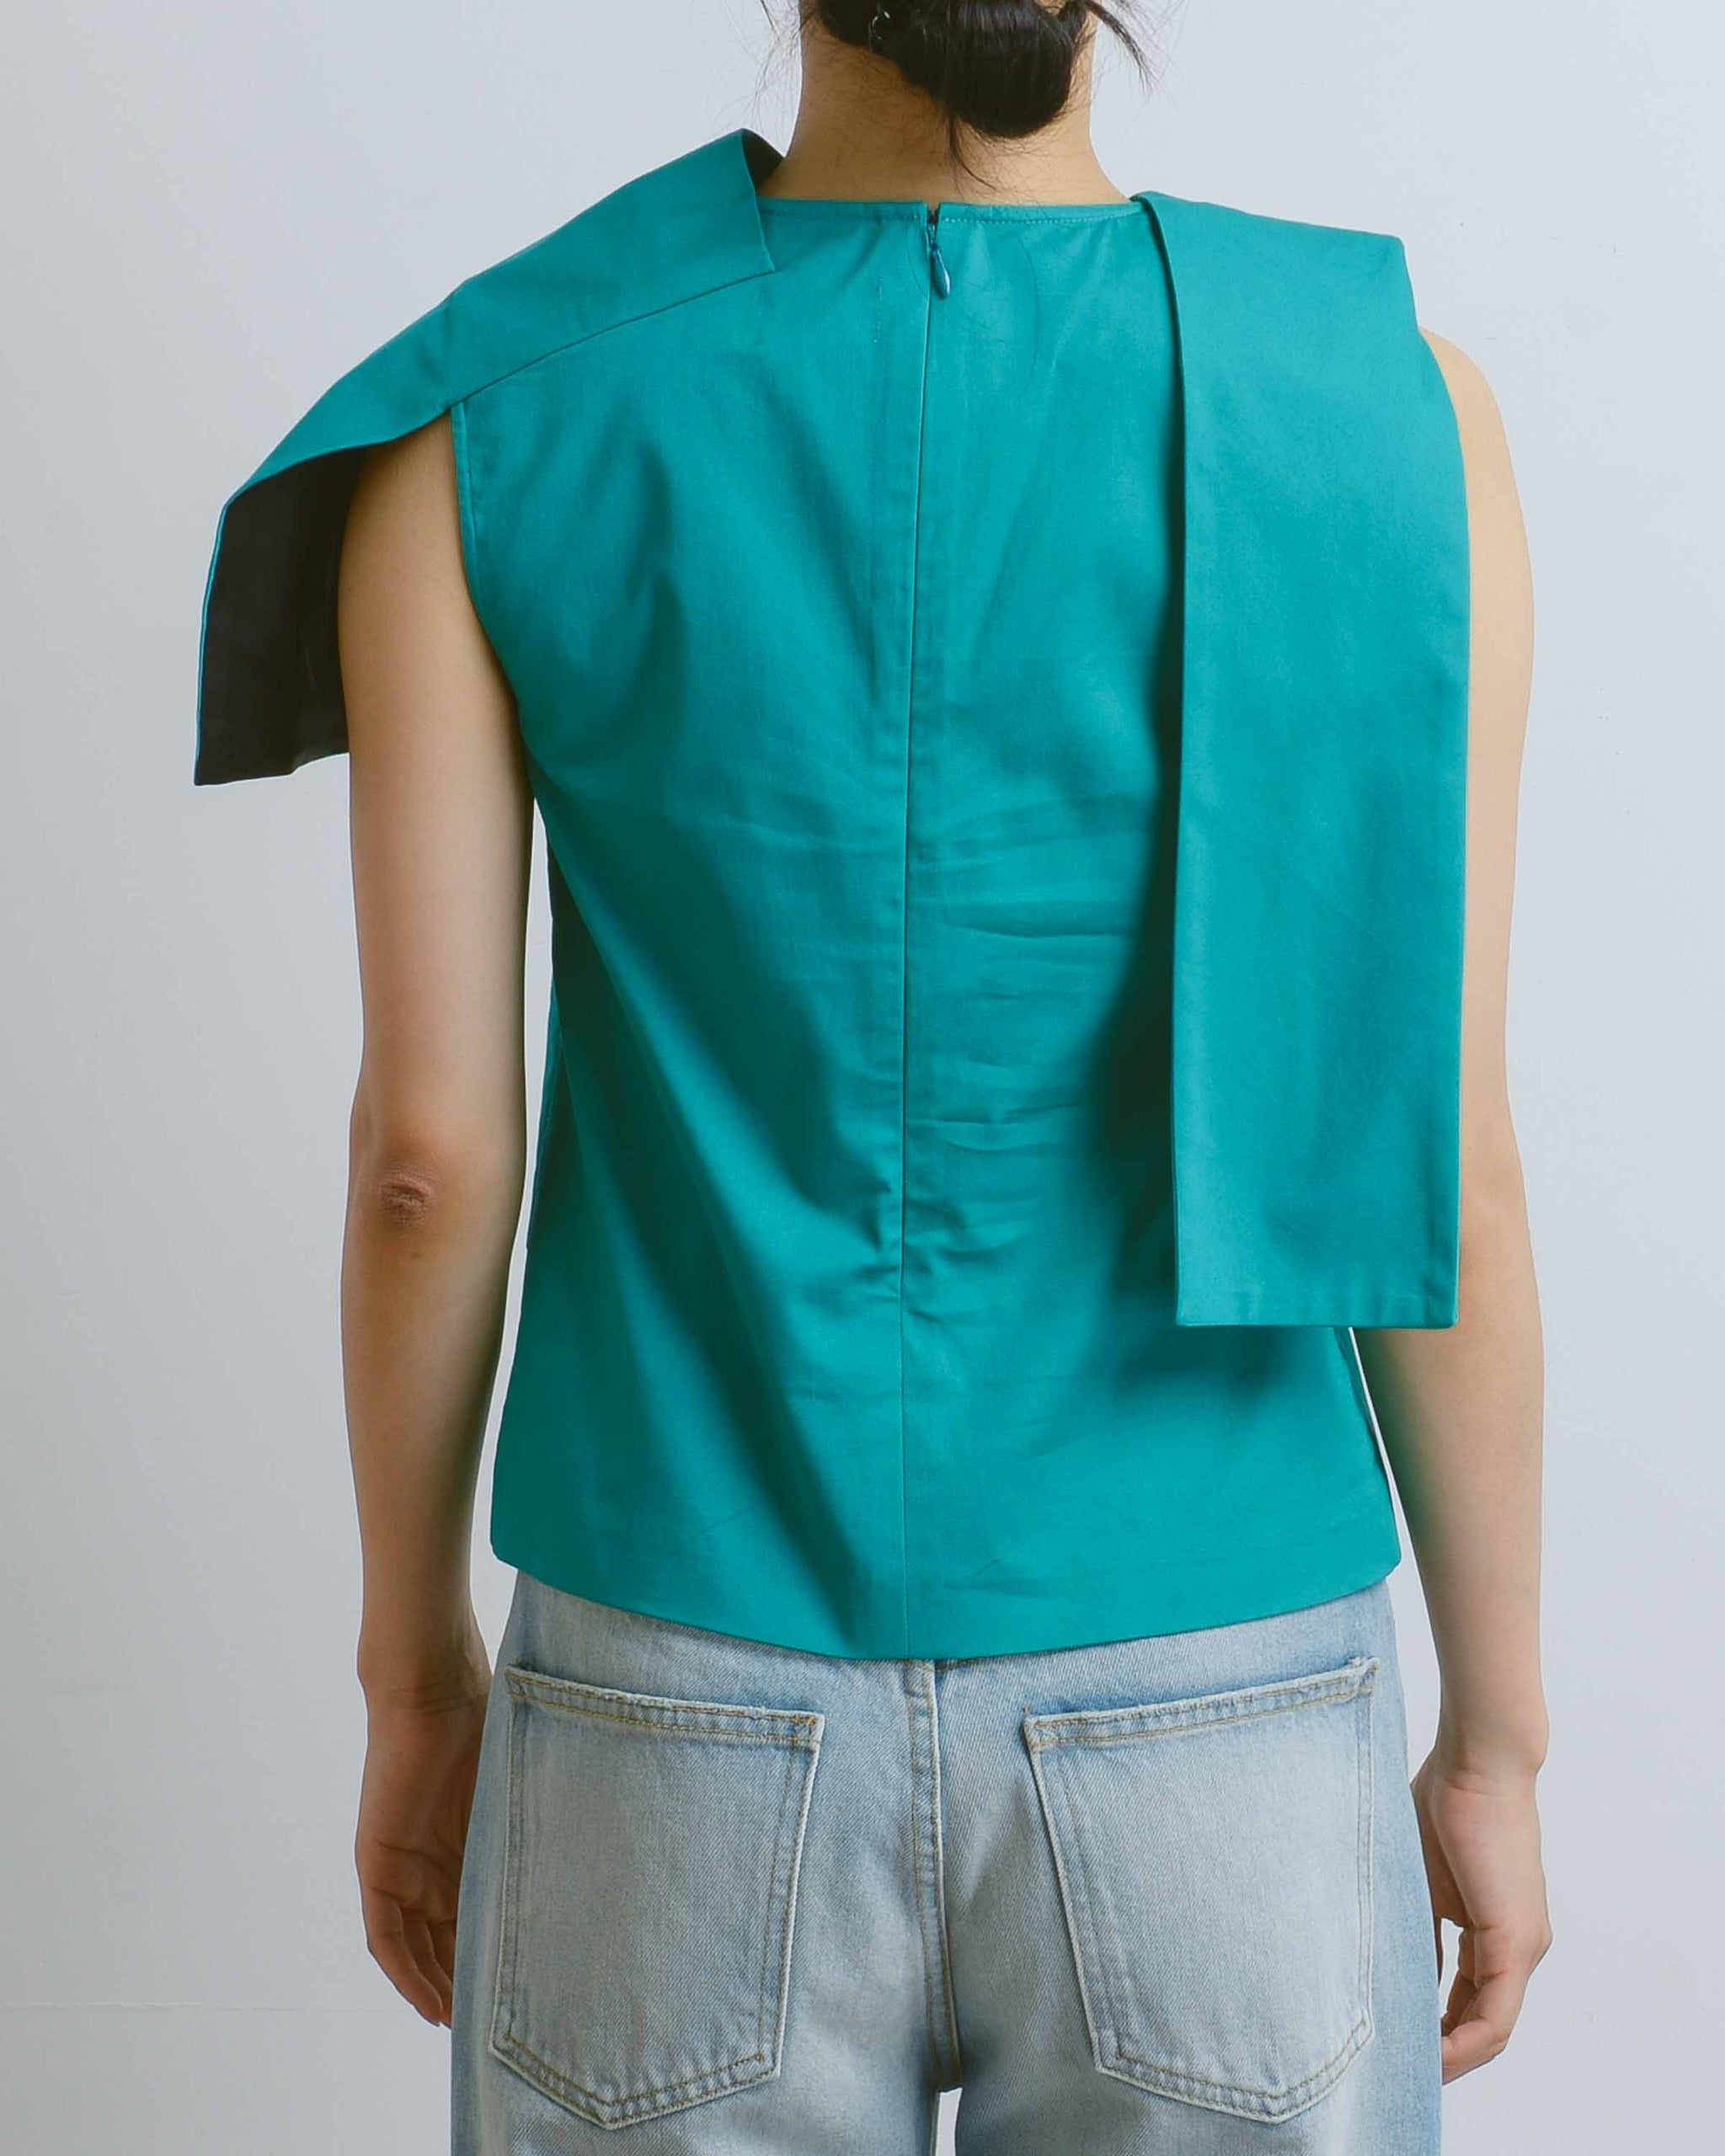 Turquoise Wonky Top